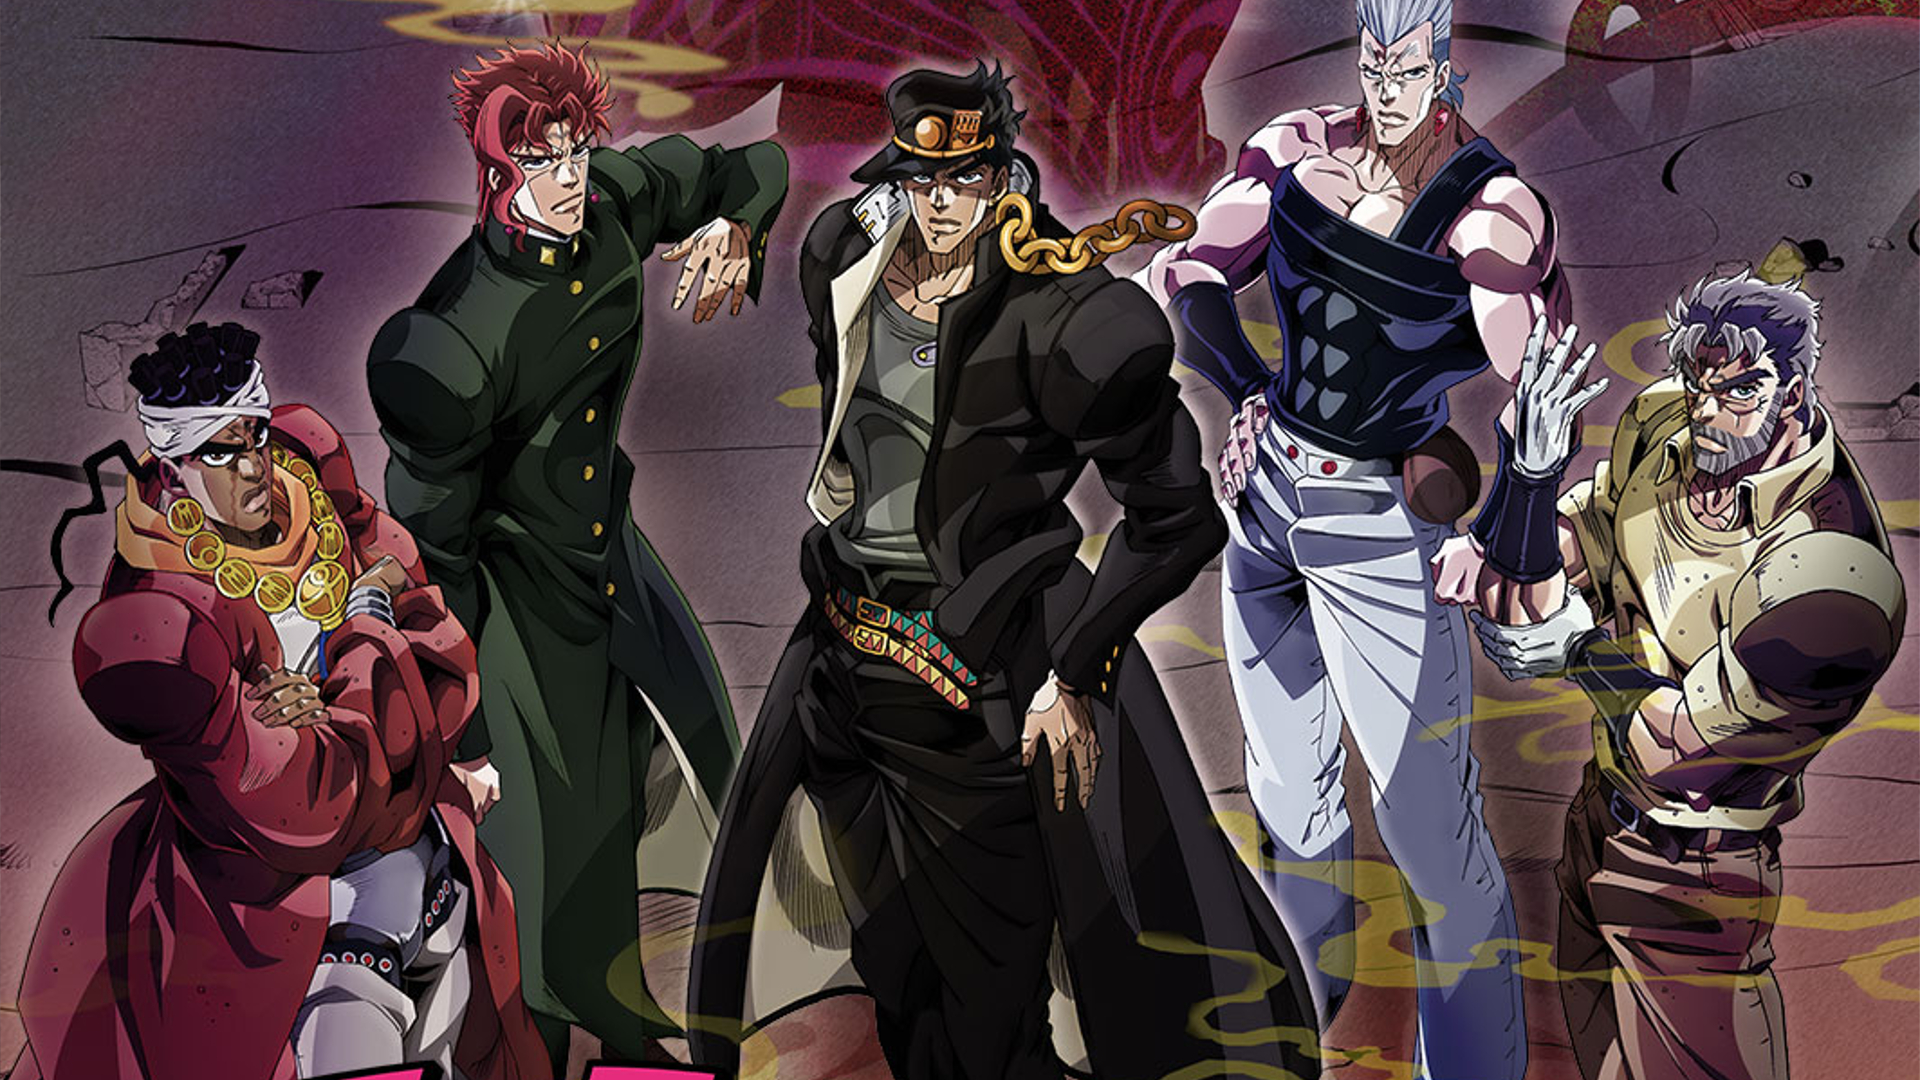 JoJo no Kimyou na Bouken: Stardust Crusaders Sub Indo Episode 01-24 End